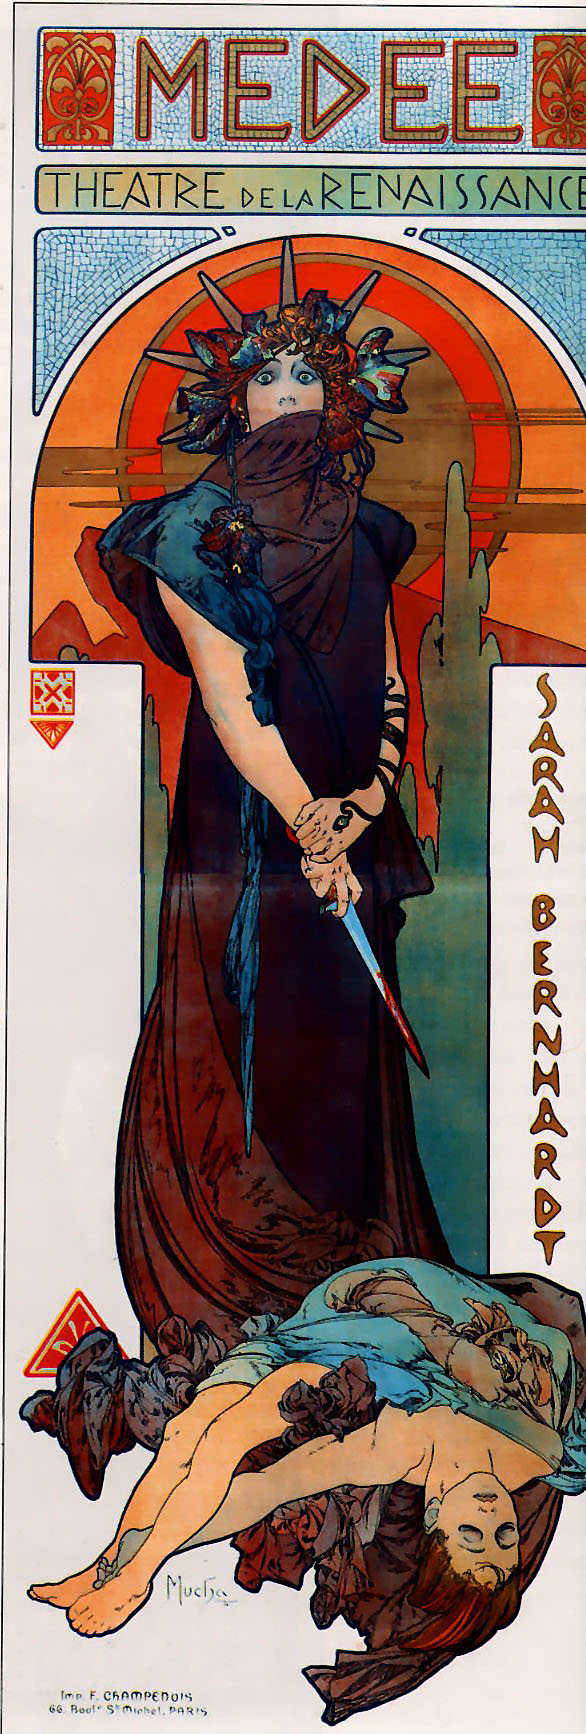 """An early 20th century poster for the play Medea. At the top is the title """"Medée"""", and below is written """"Théatre de la Renaissance"""". A woman wearing a pointed crown stands in the middle, holding a bloody dagger in her left hand, and wearing a dark robe with a scarf which covers her mouth. To her right is written the name of the actress, """"Sarah Bernhardt"""", and on the ground lies a young man in a tunic with his eyes closed. In the background the sky is red, and a deeper red sun frames the woman's head."""